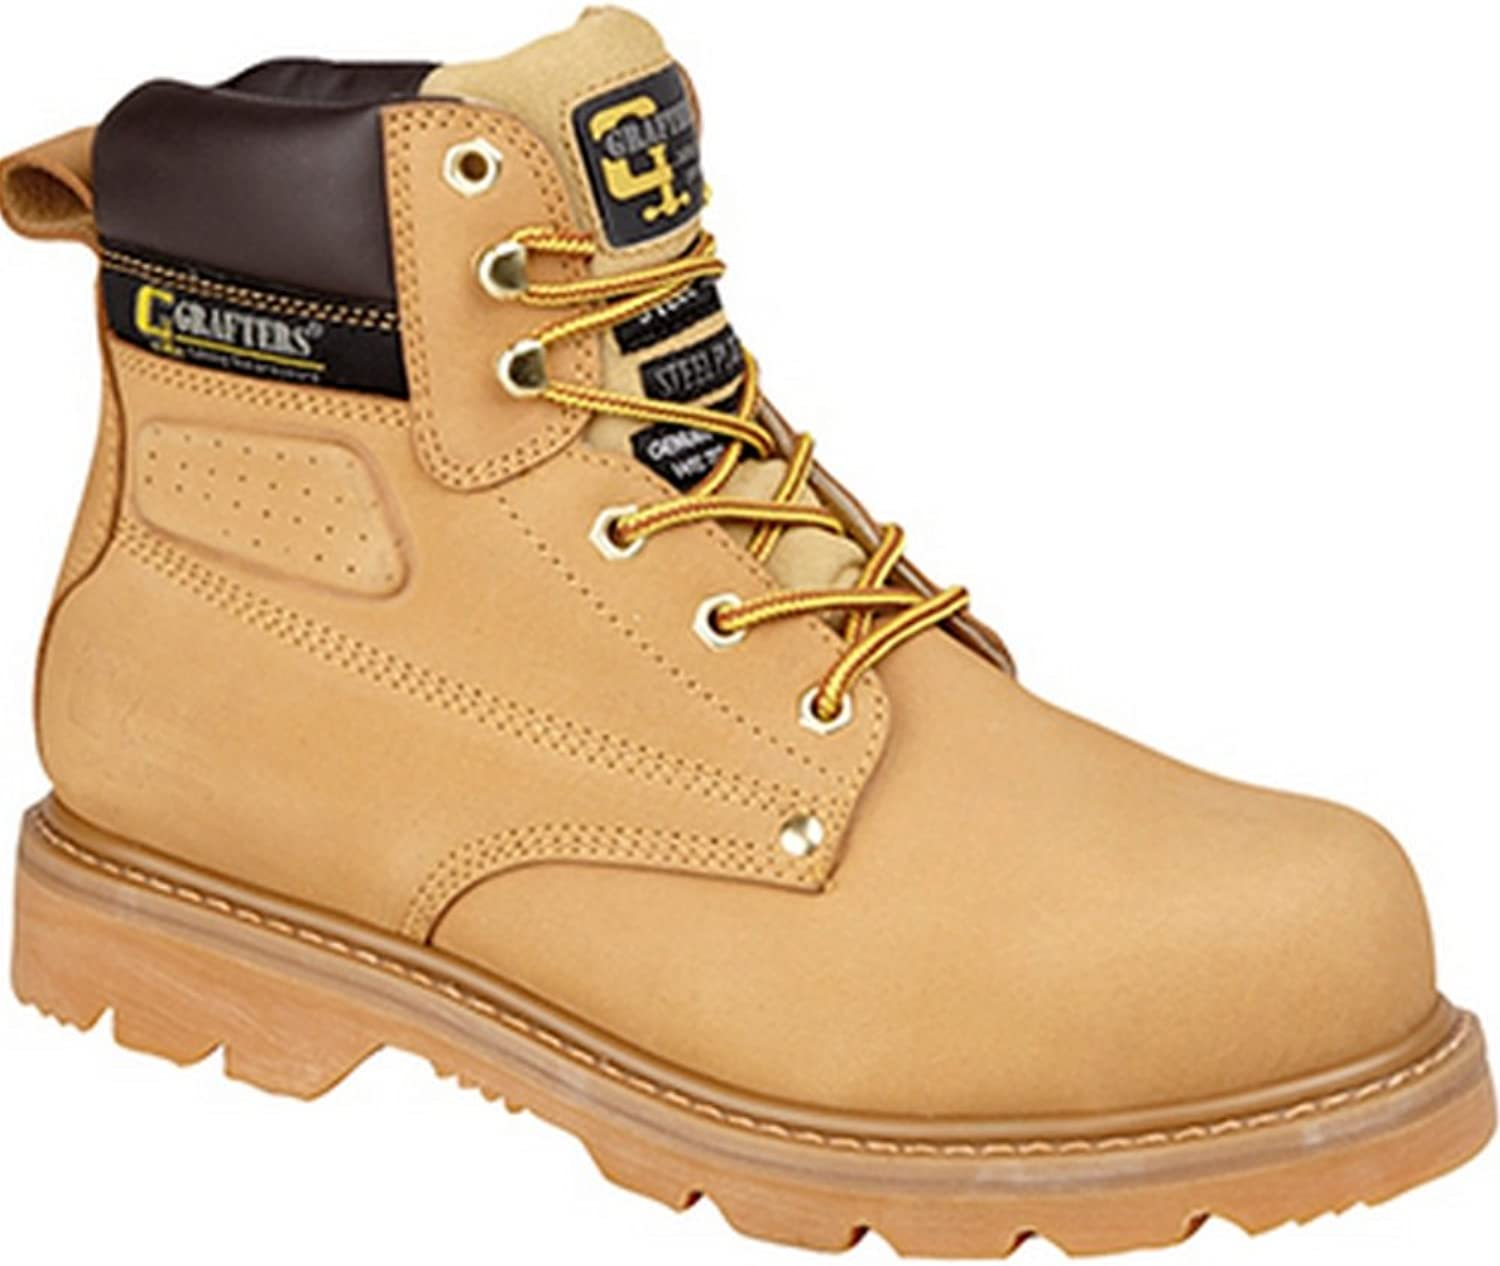 Grafters Gladiator Safety Boot Size 07